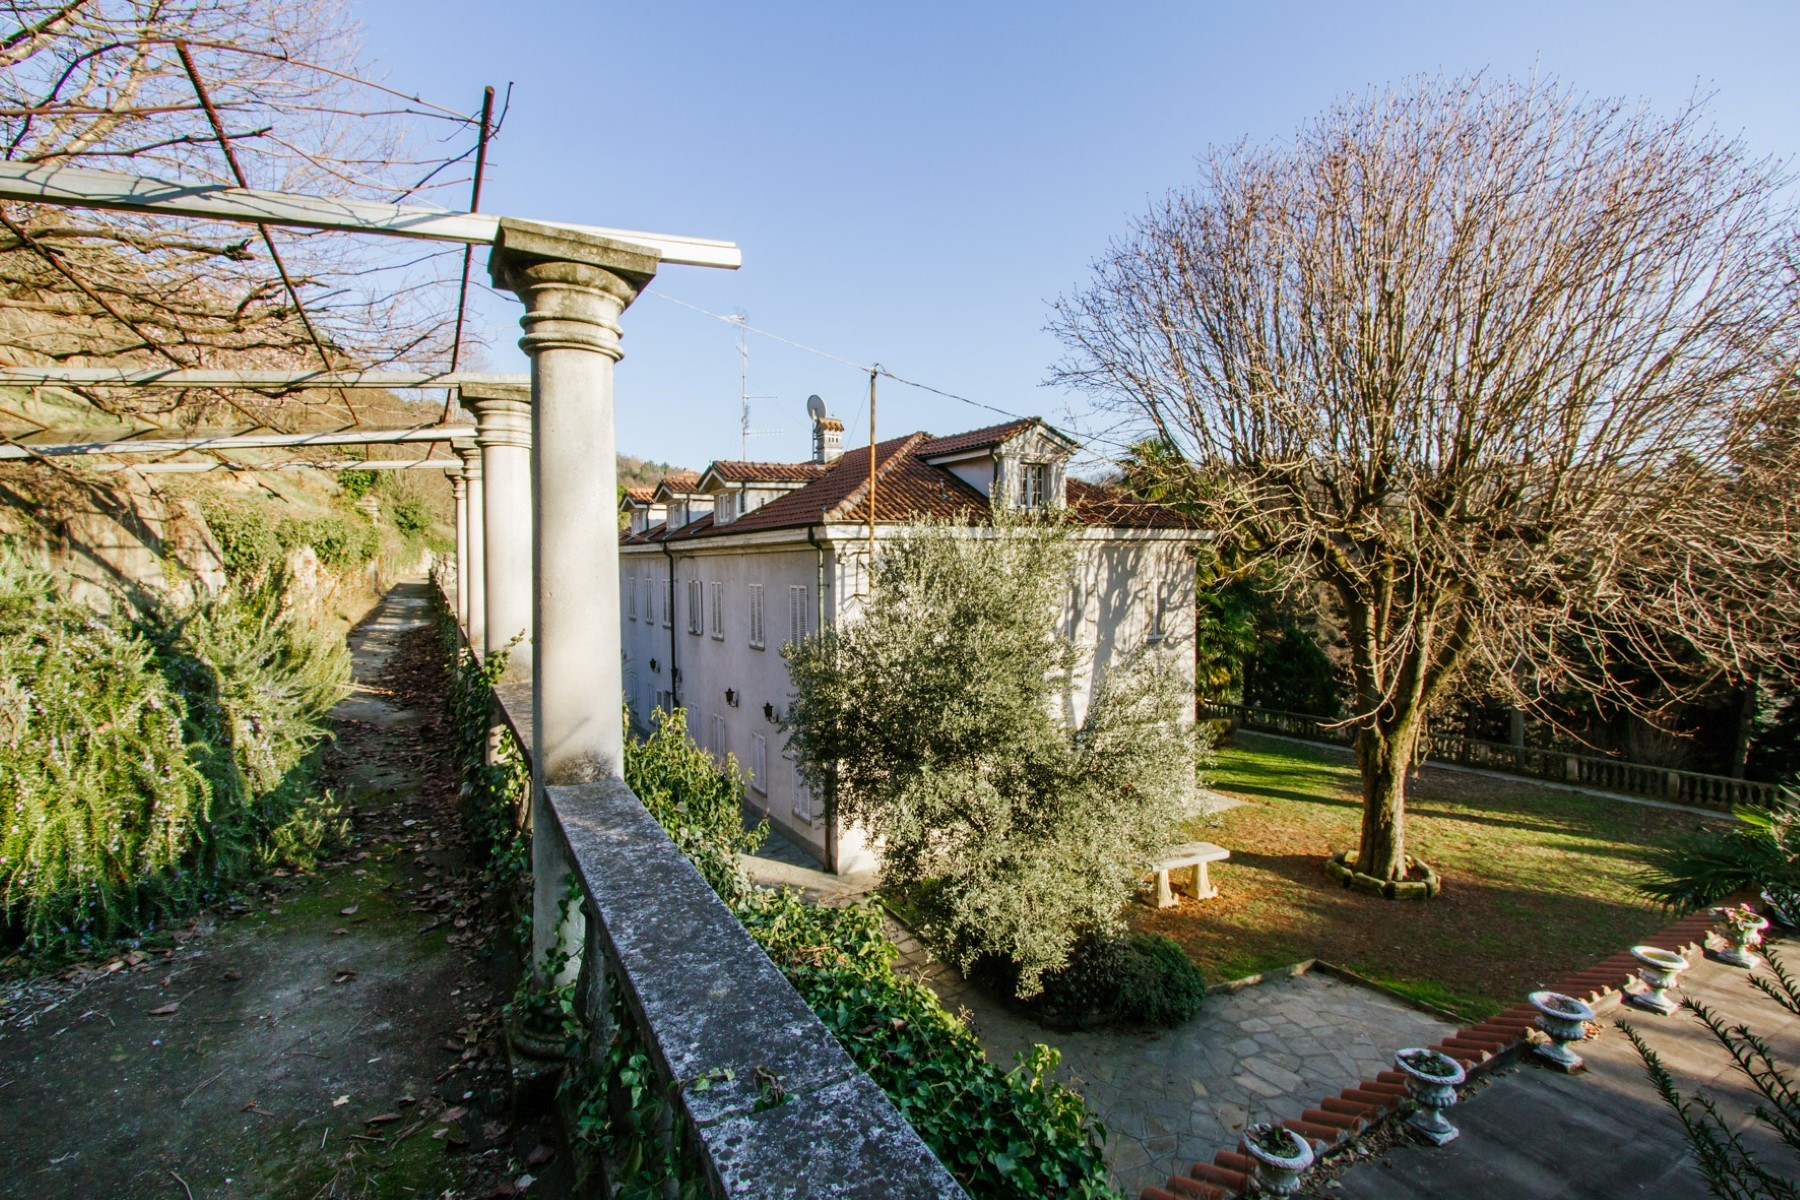 Additional photo for property listing at Historic villa with vineyard of the 1750 on the Moncalieri Hill Via Segantini Moncalieri, Turin 10024 Italia